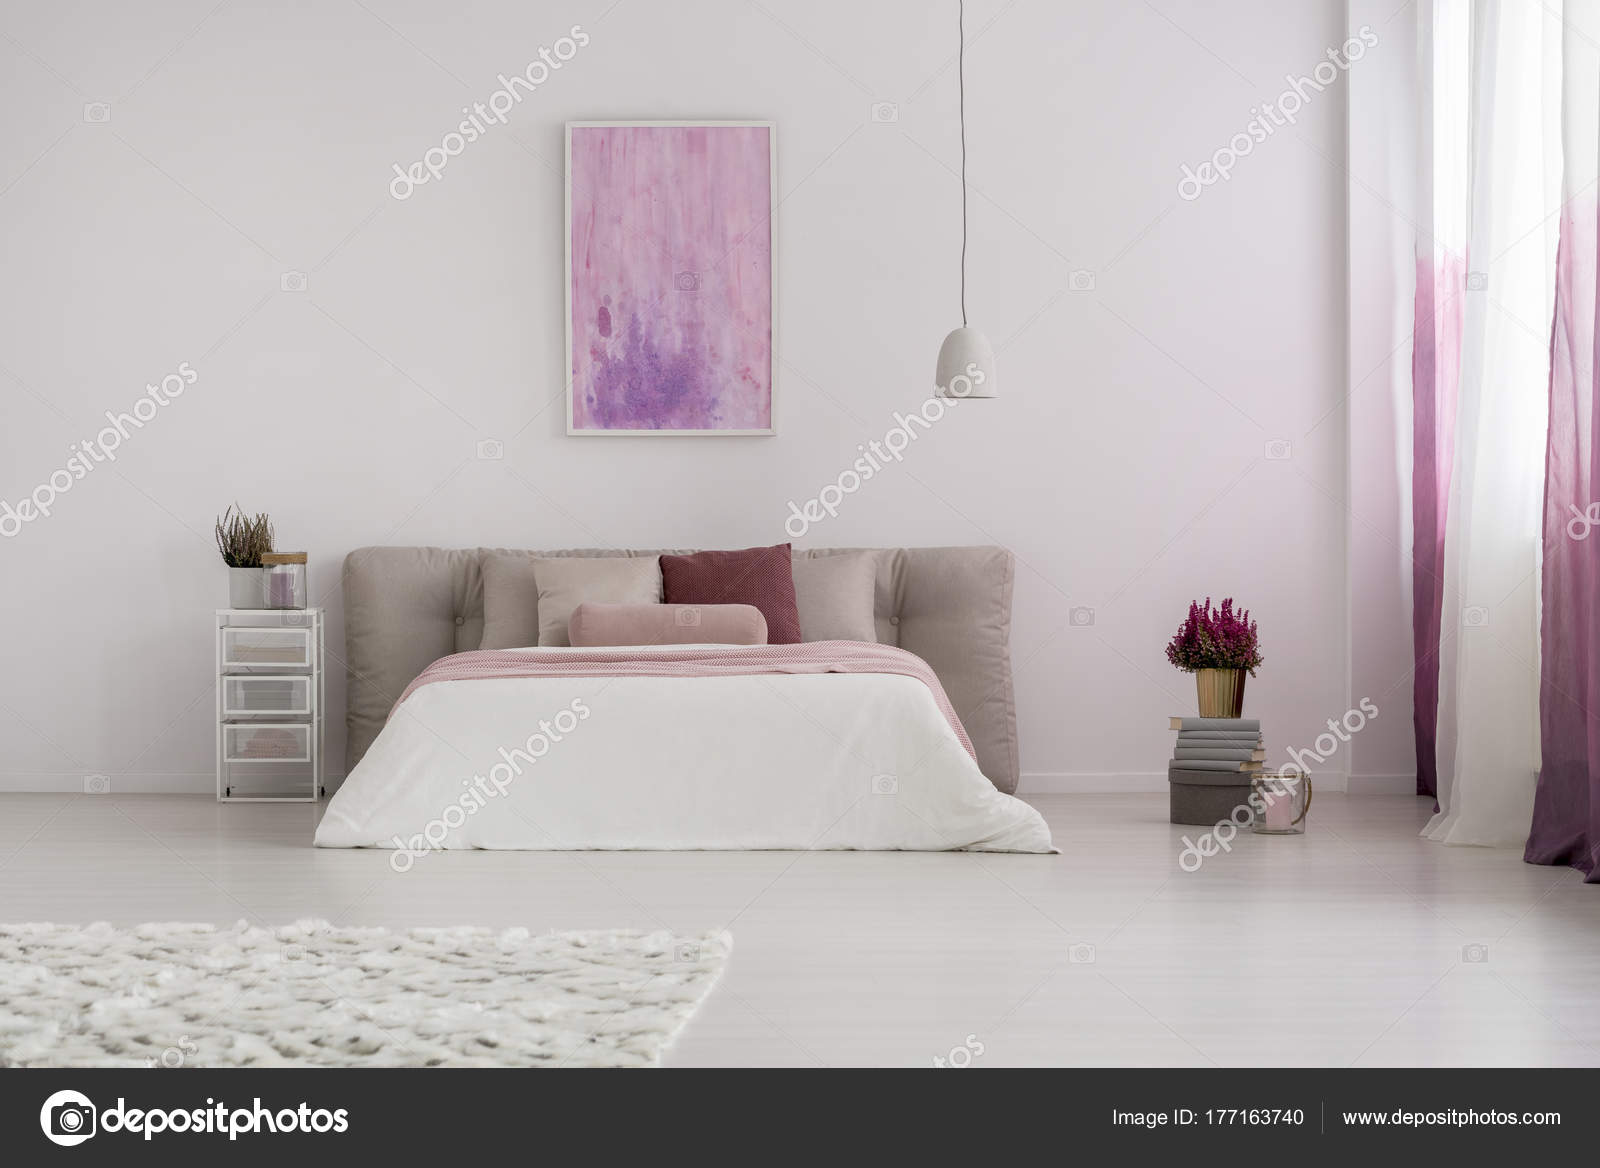 https://st3.depositphotos.com/2249091/17716/i/1600/depositphotos_177163740-stock-photo-pink-painting-in-spacious-bedroom.jpg